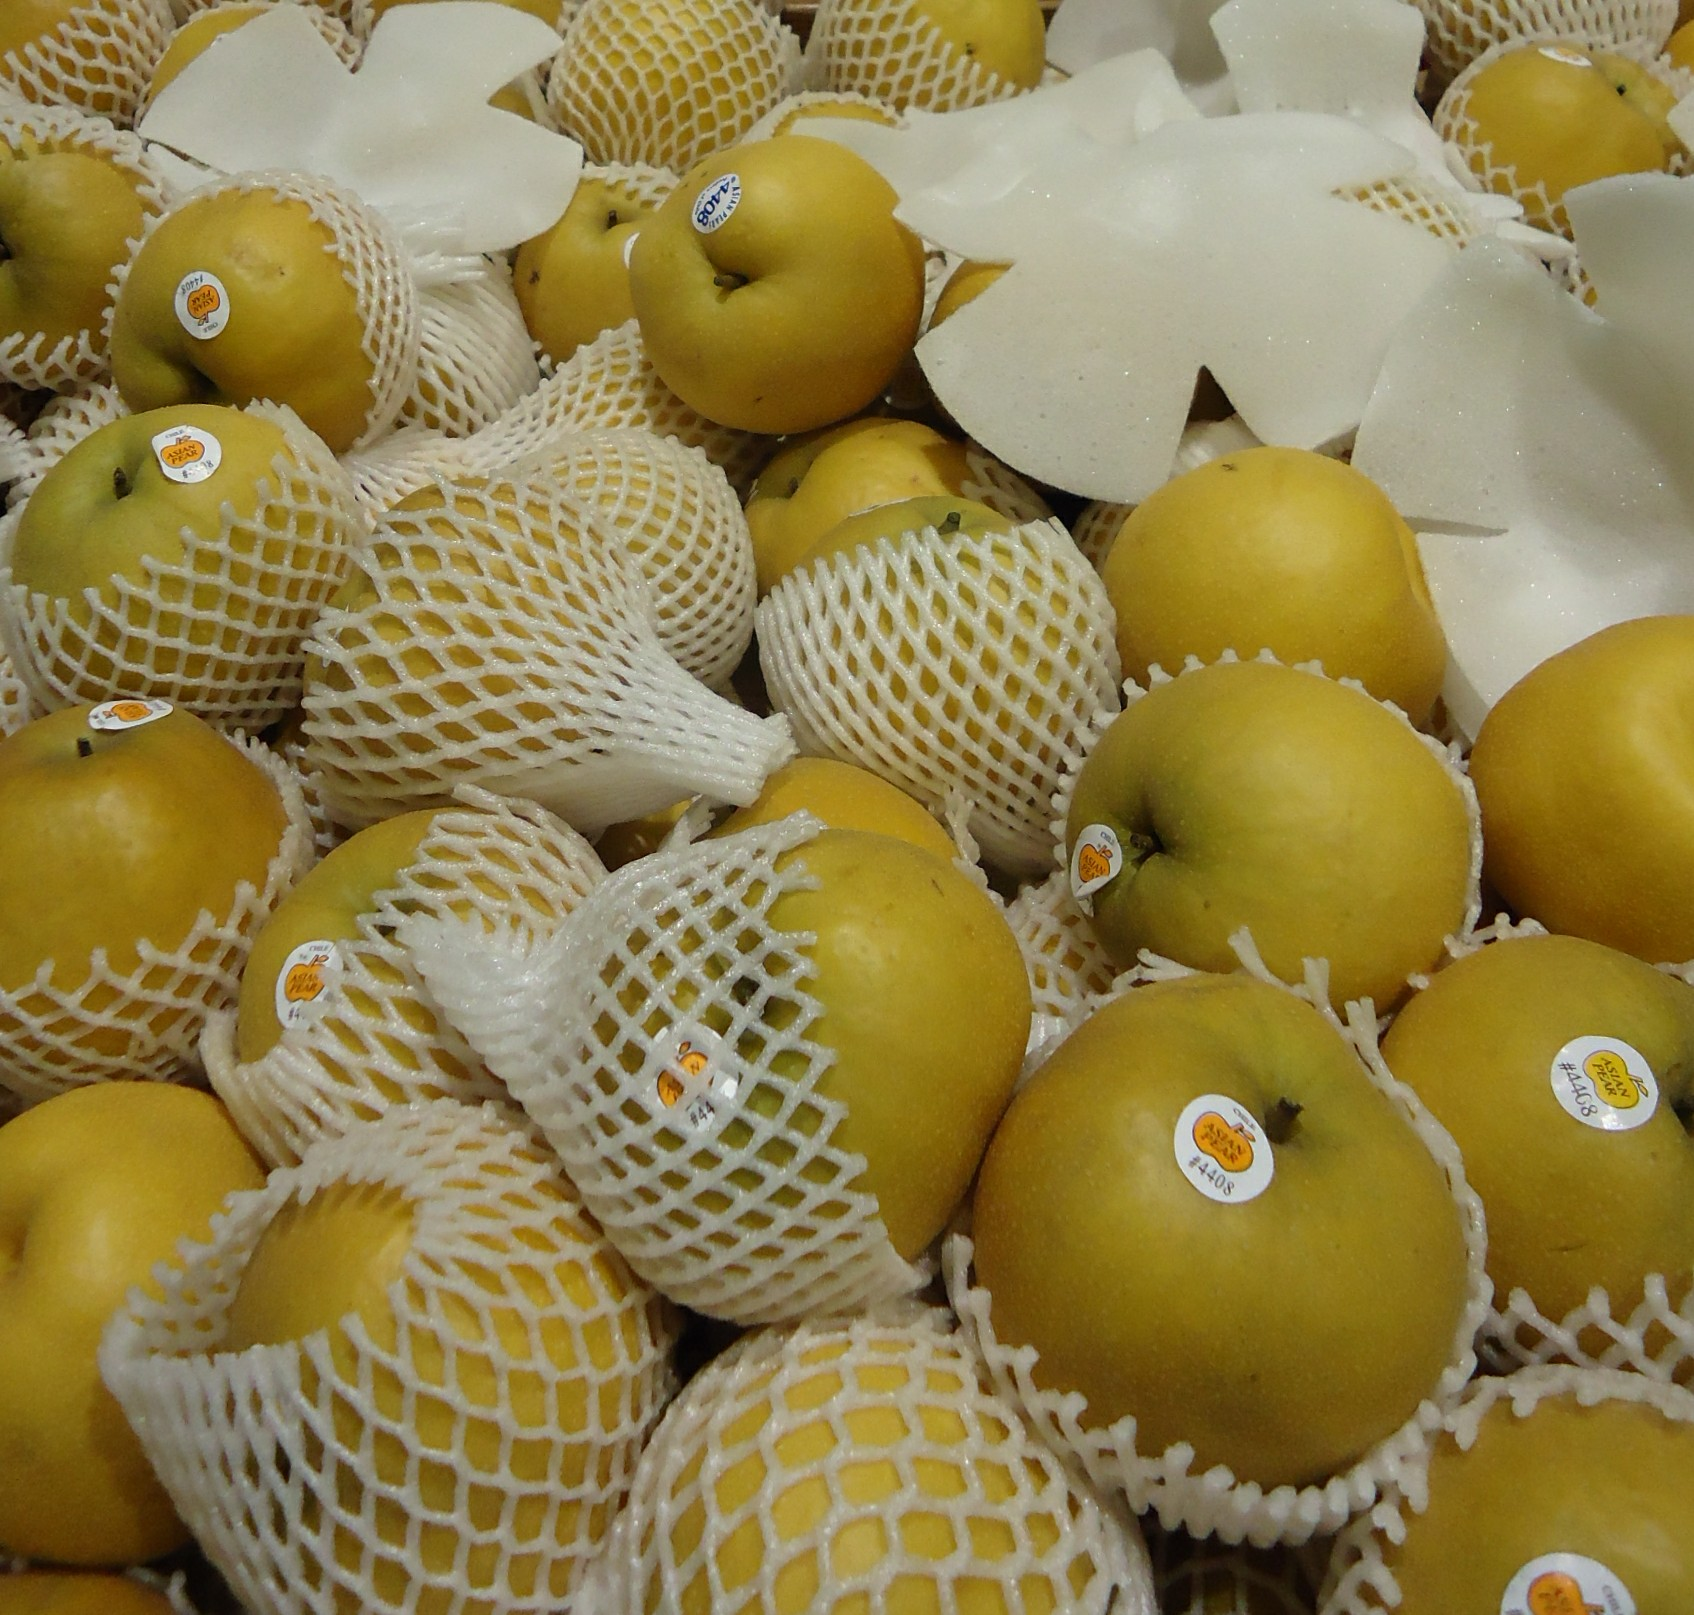 Asian pears, imported from China, as typically sold in American supermarkets